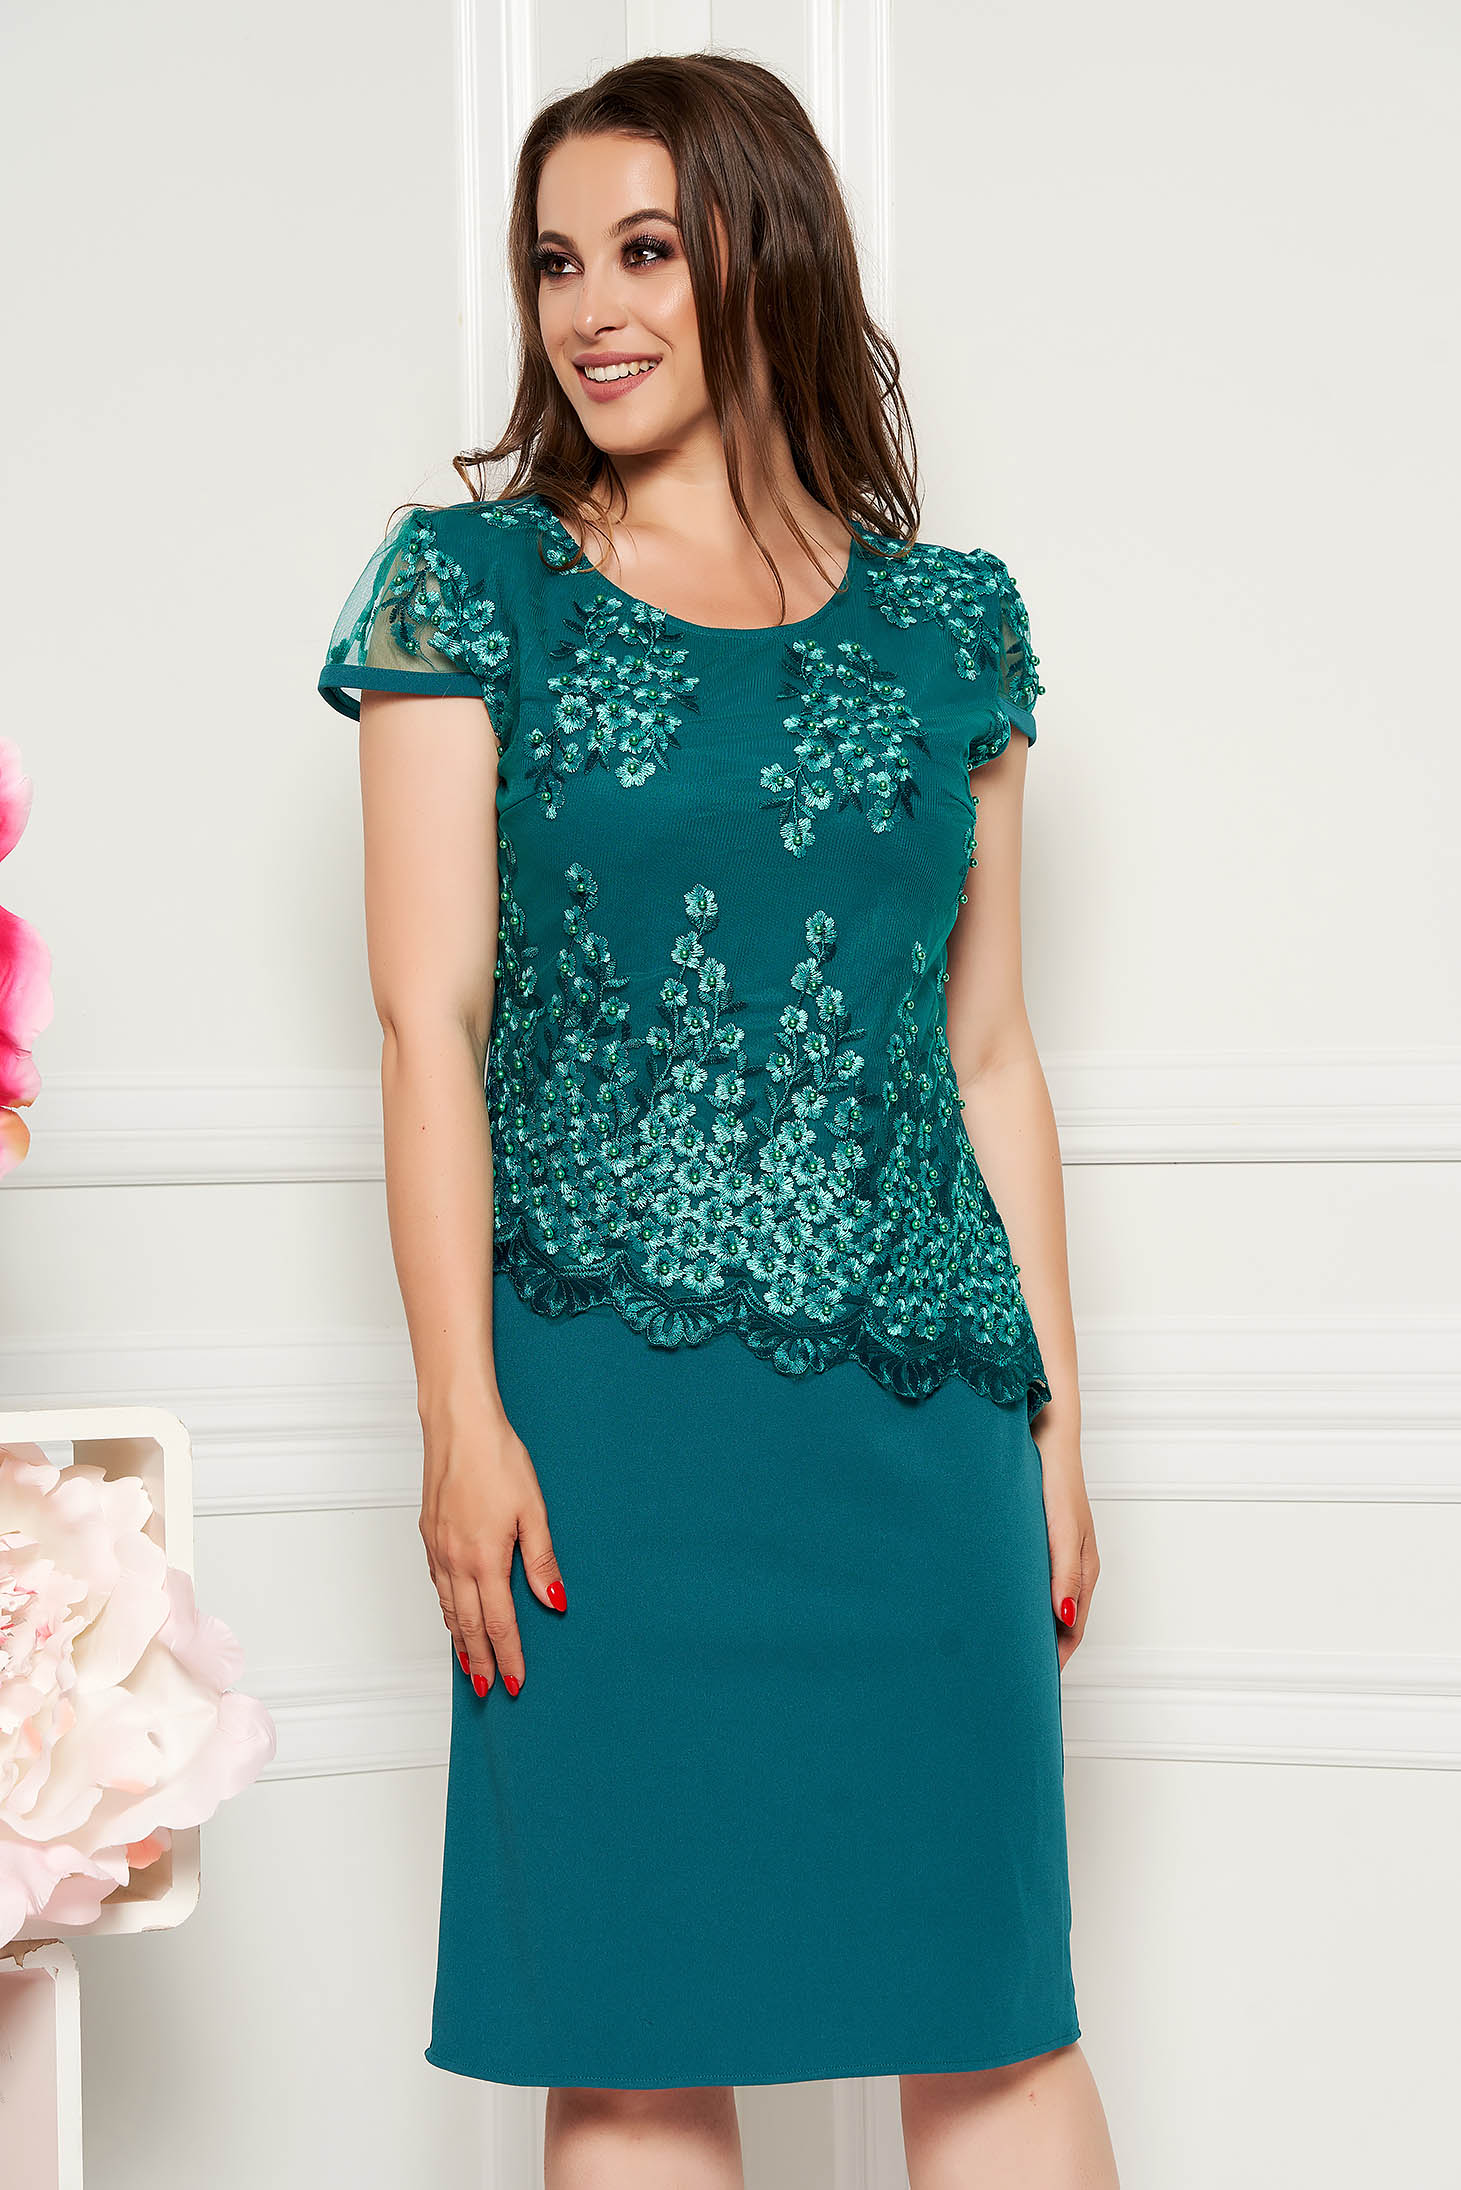 19cd43cffb0dd Dirty green elegant midi dress short sleeves thin fabric lace overlay ...